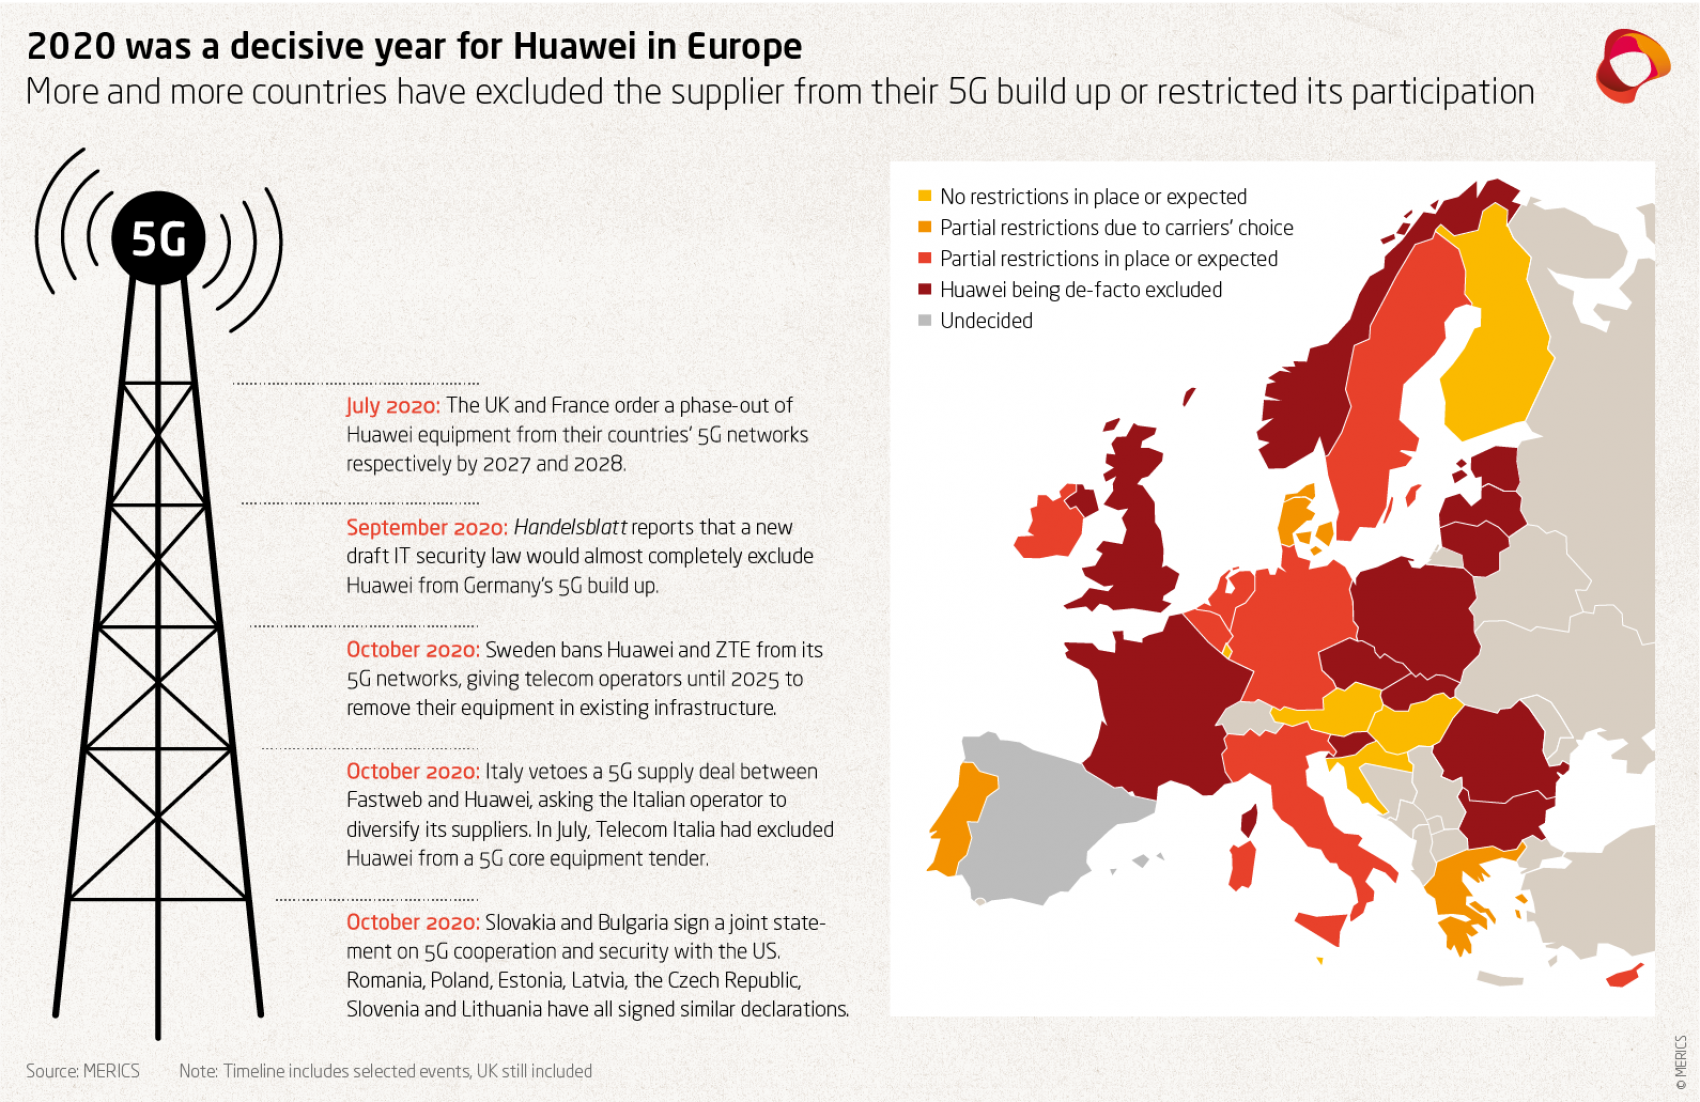 2020 was a decisive year for Huawei in Europe